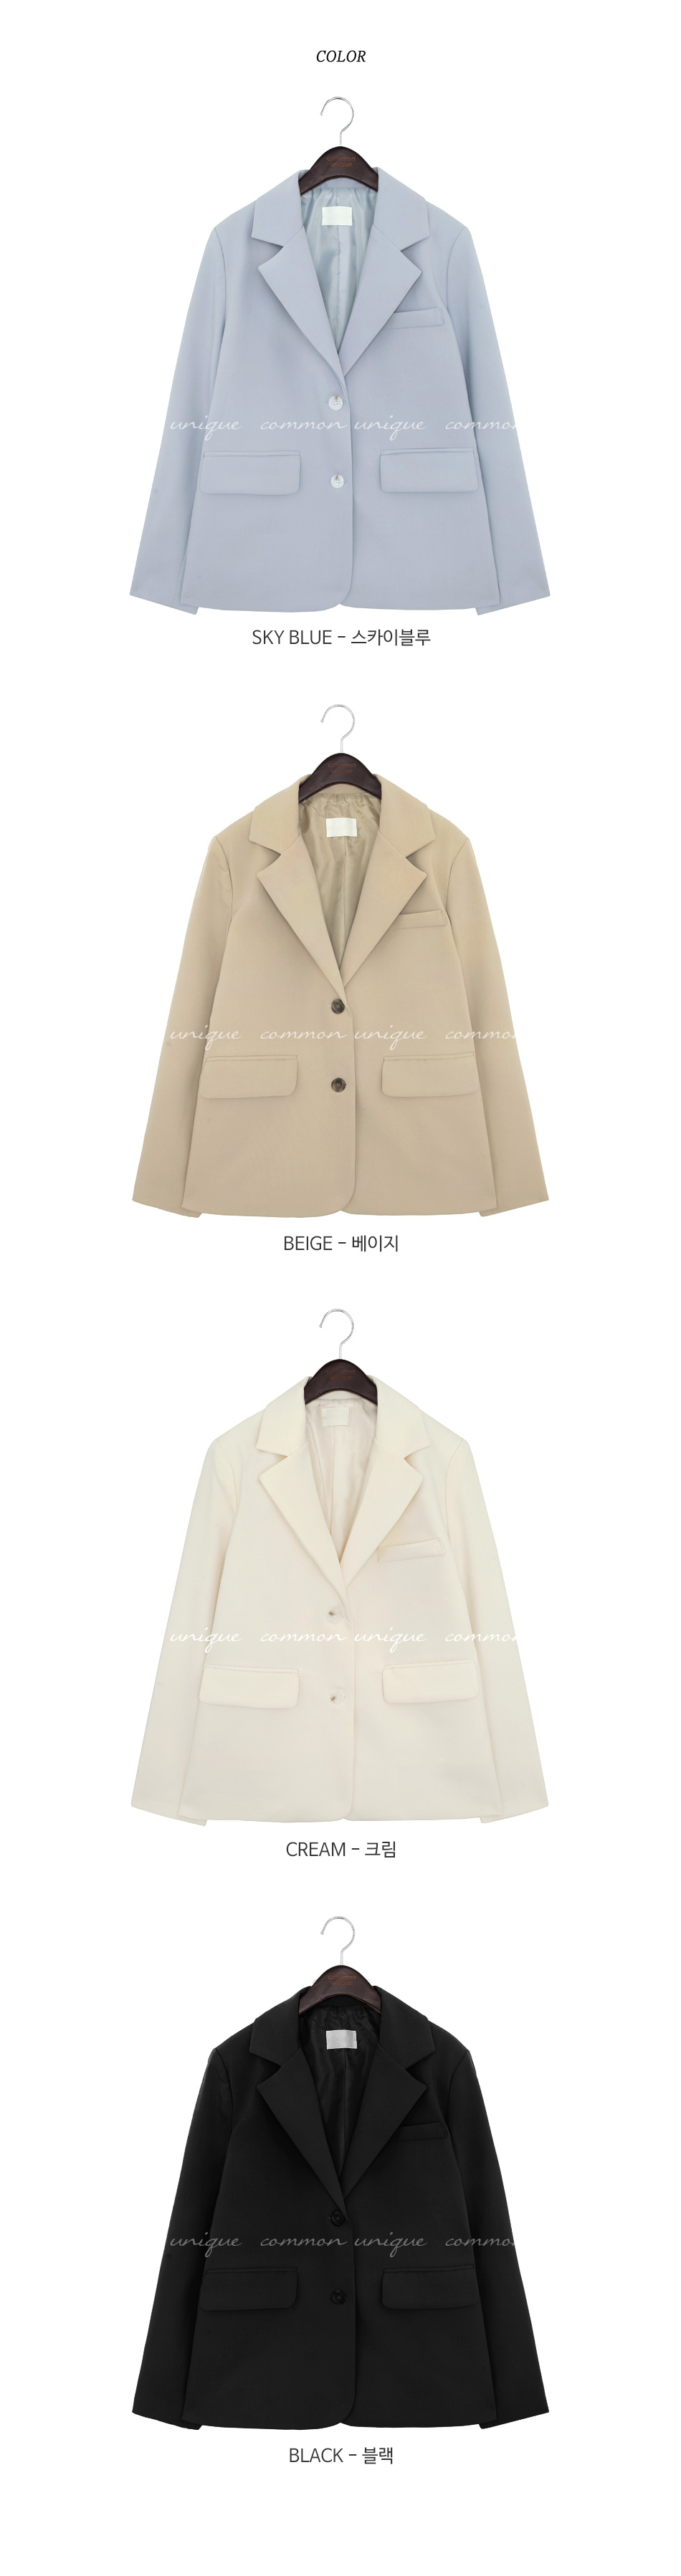 MALT BASIC SINGLE JACKET